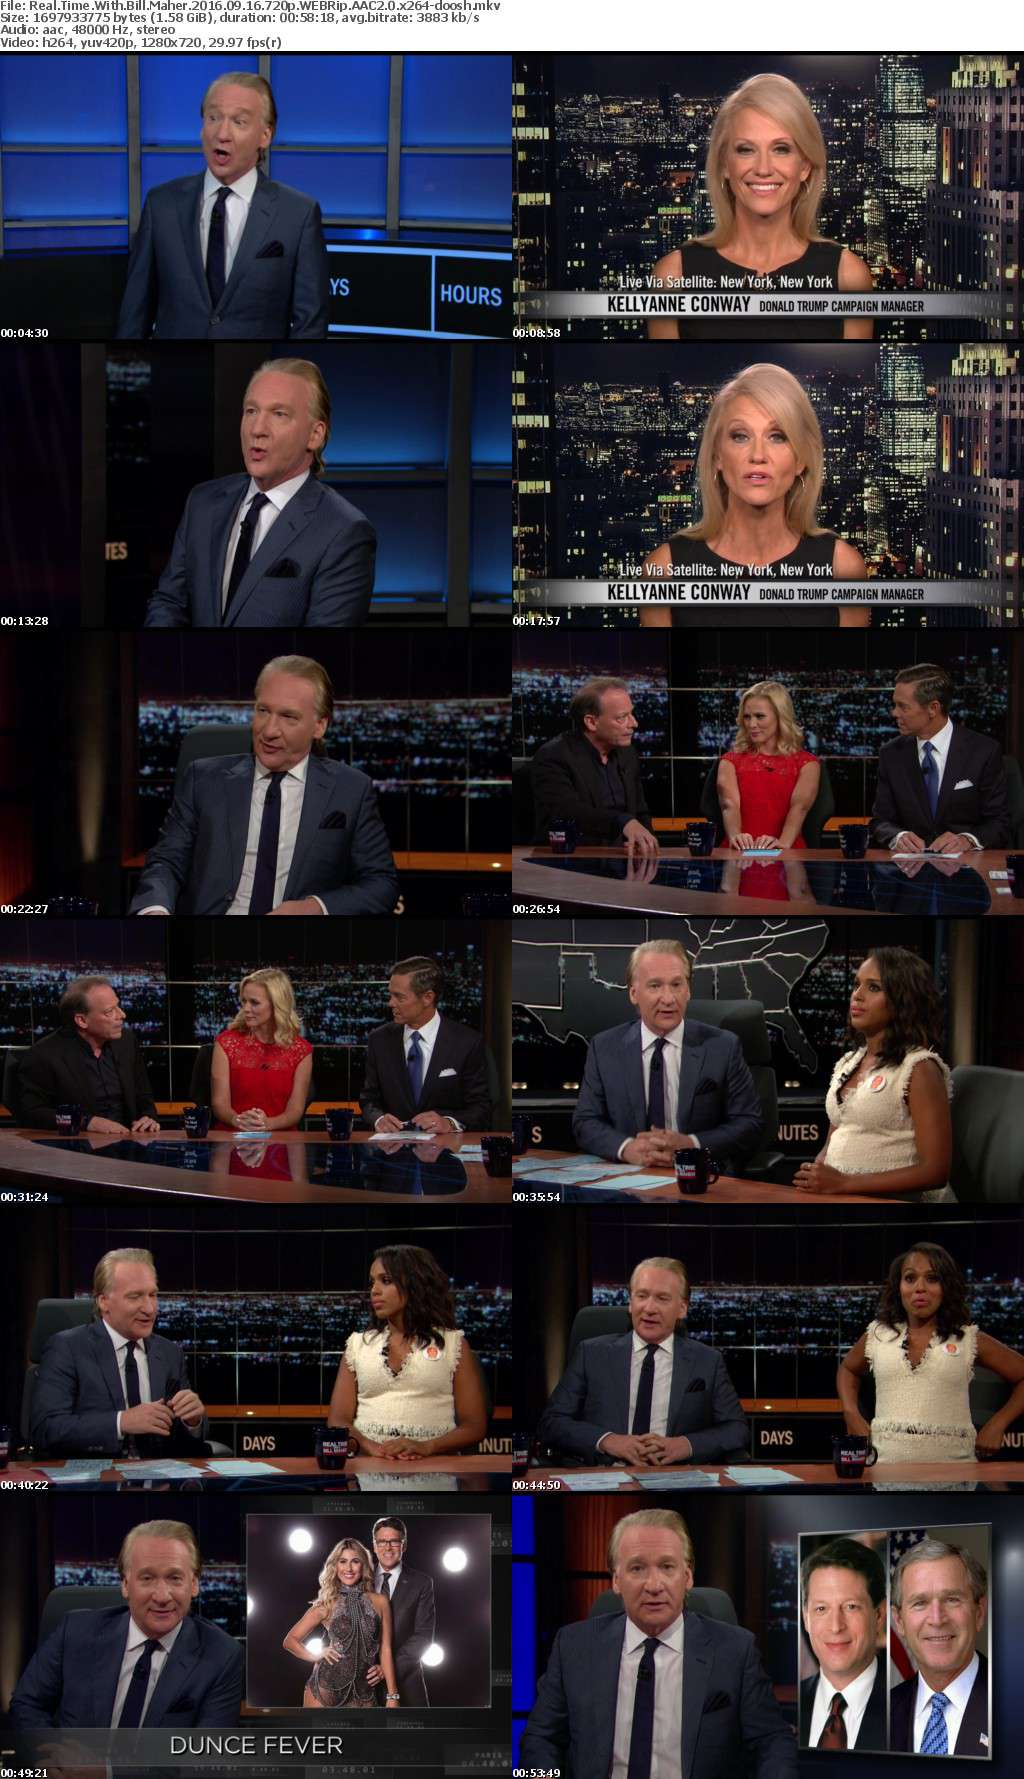 Real Time With Bill Maher 2016 09 16 720p WEBRip AAC2 0 x264-doosh